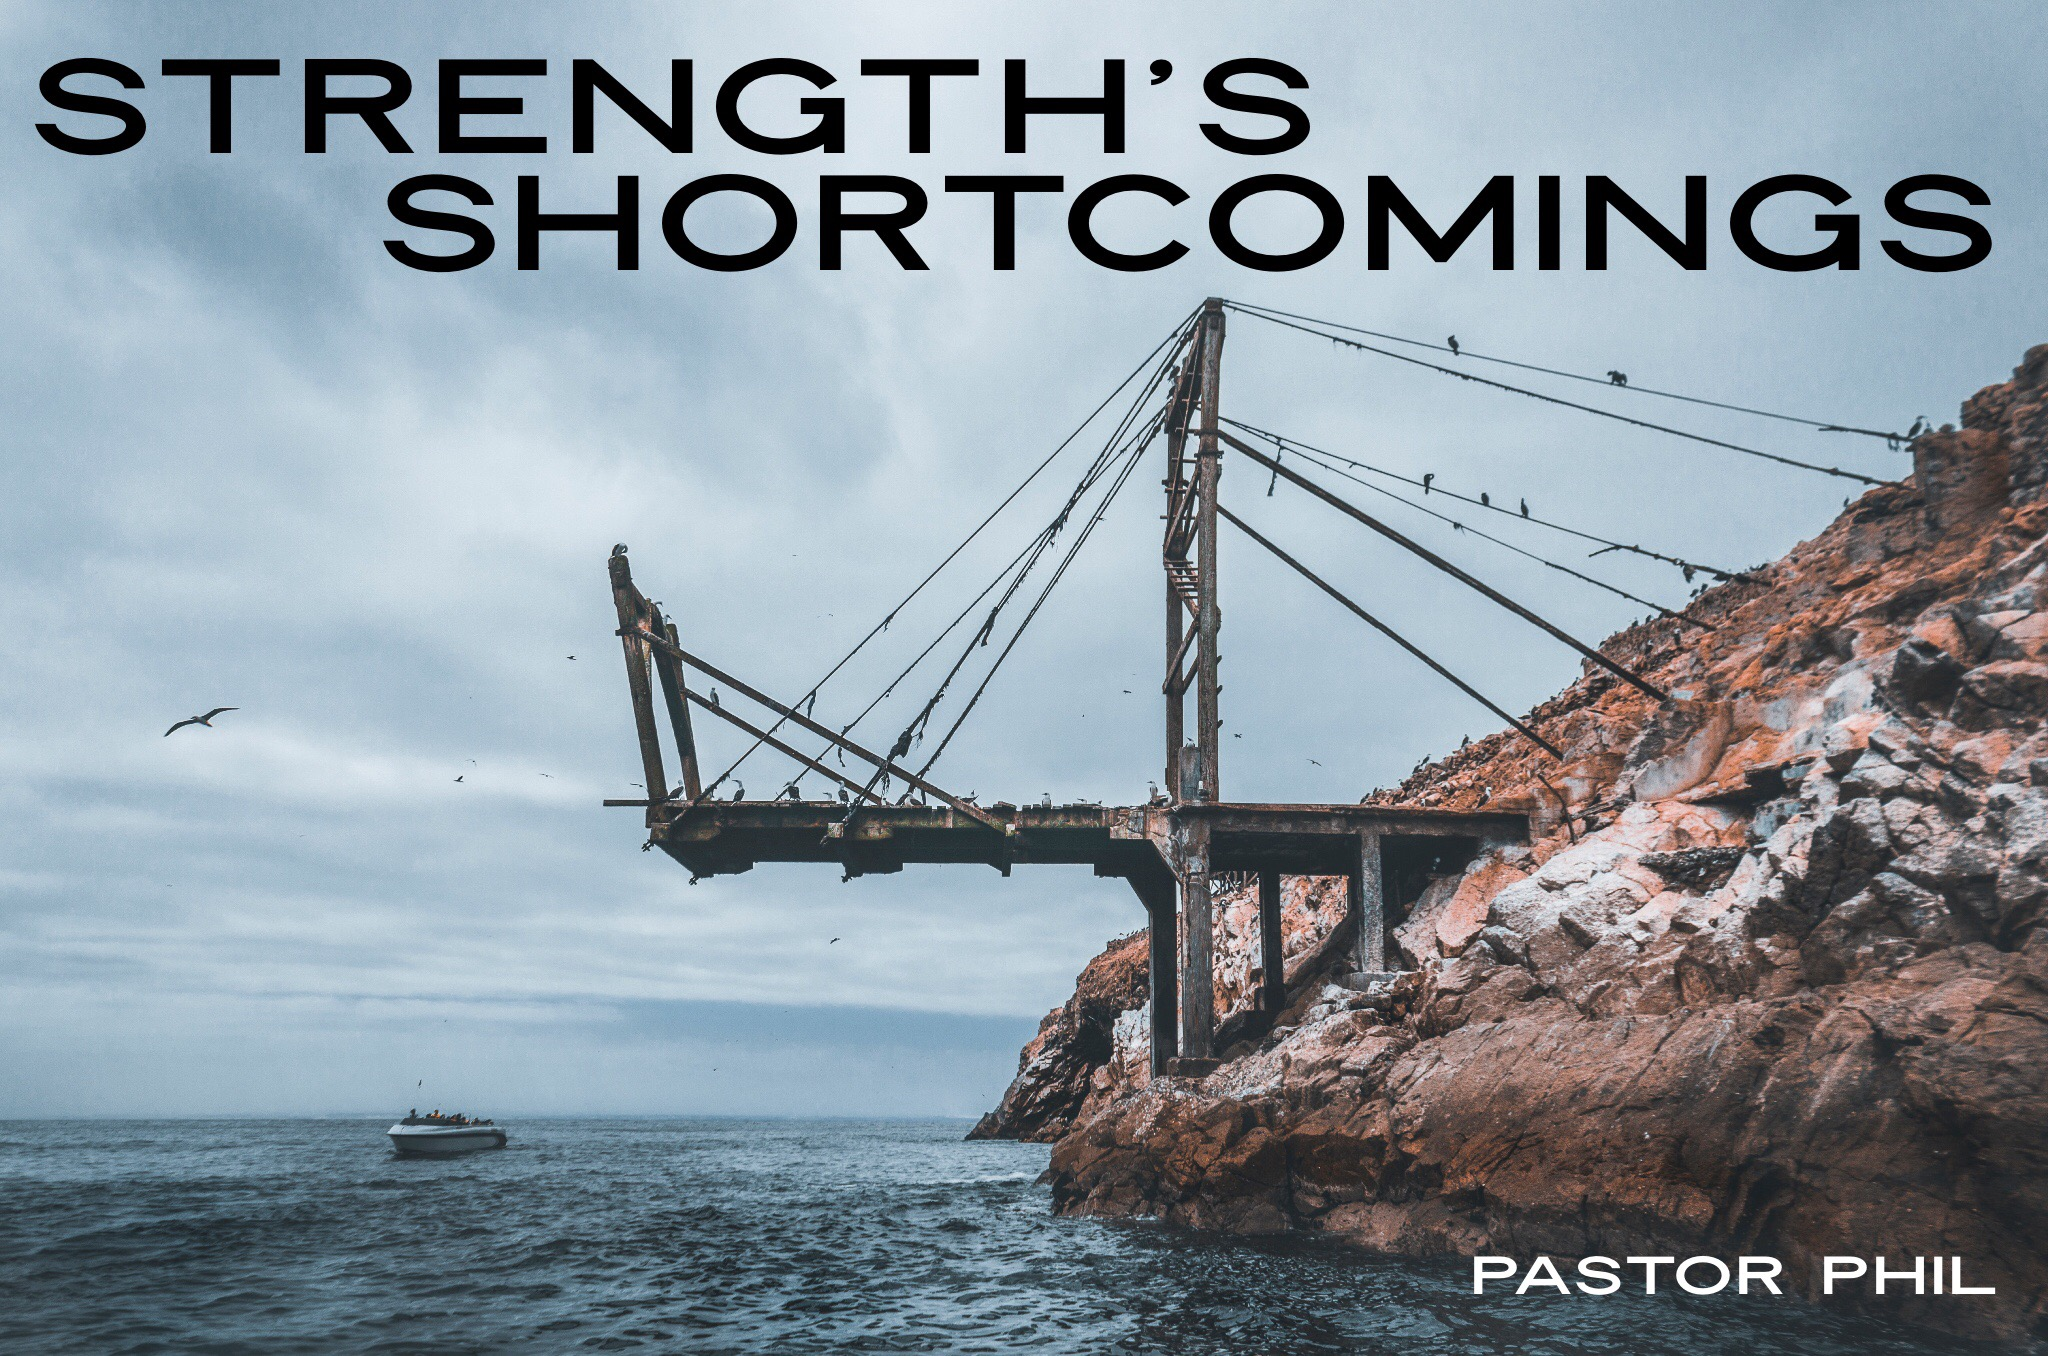 Strength's Shortcomings